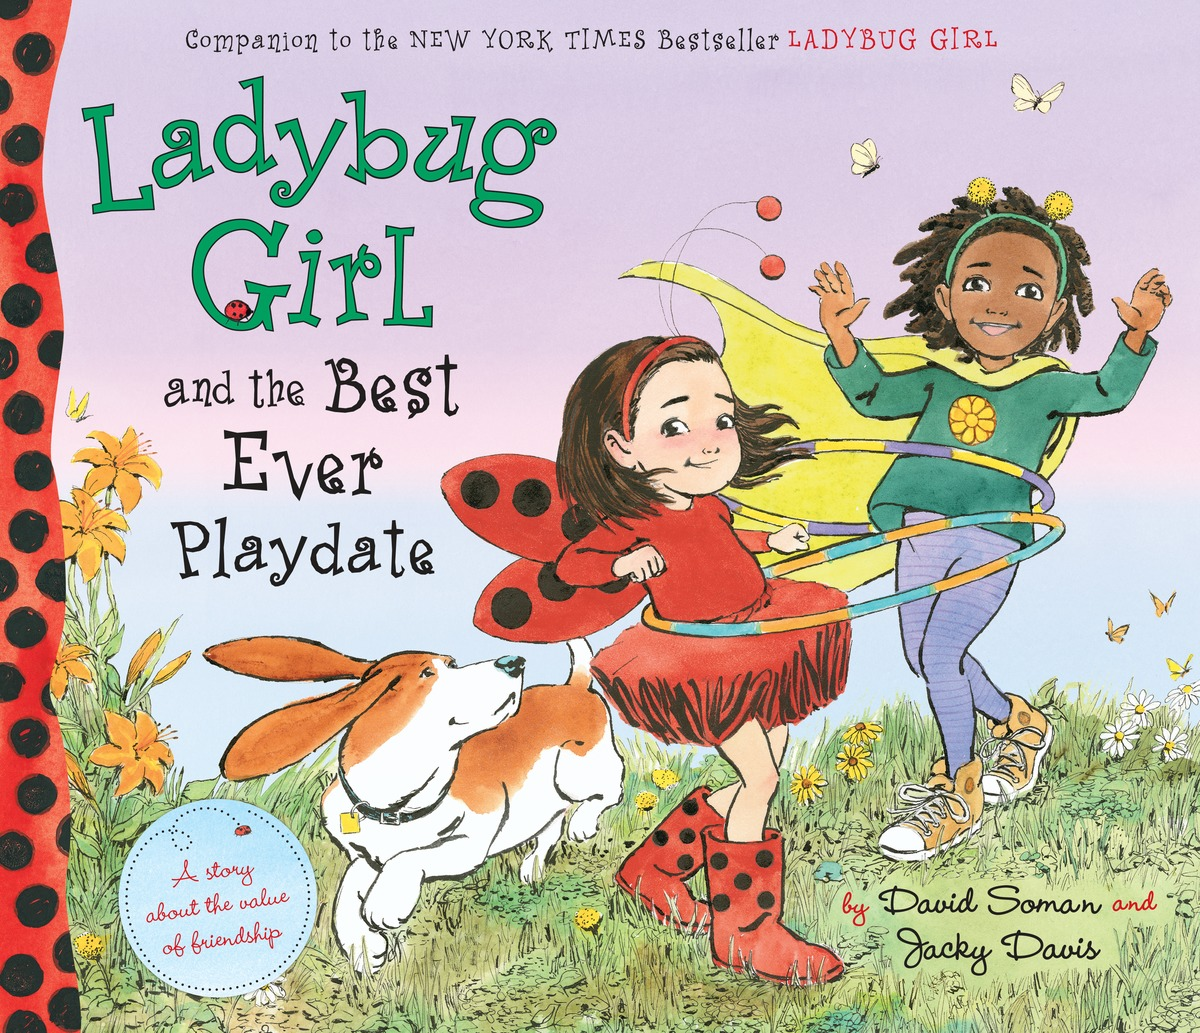 LADYBUG GIRL AND THE BEST EVER ladybug girl and the best ever